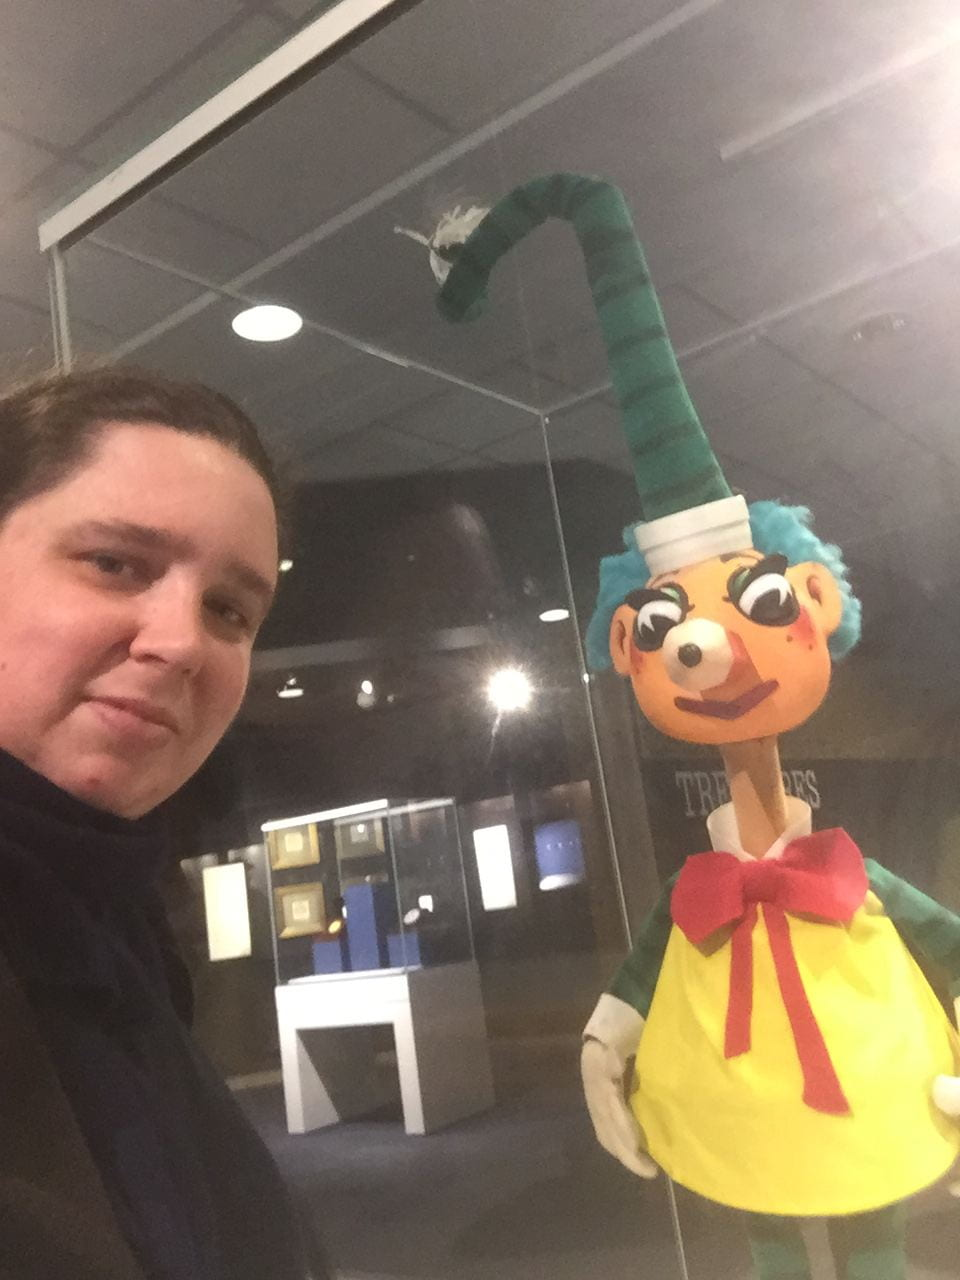 Encountering puppets from my childhood- Mr Squiggle and Friends